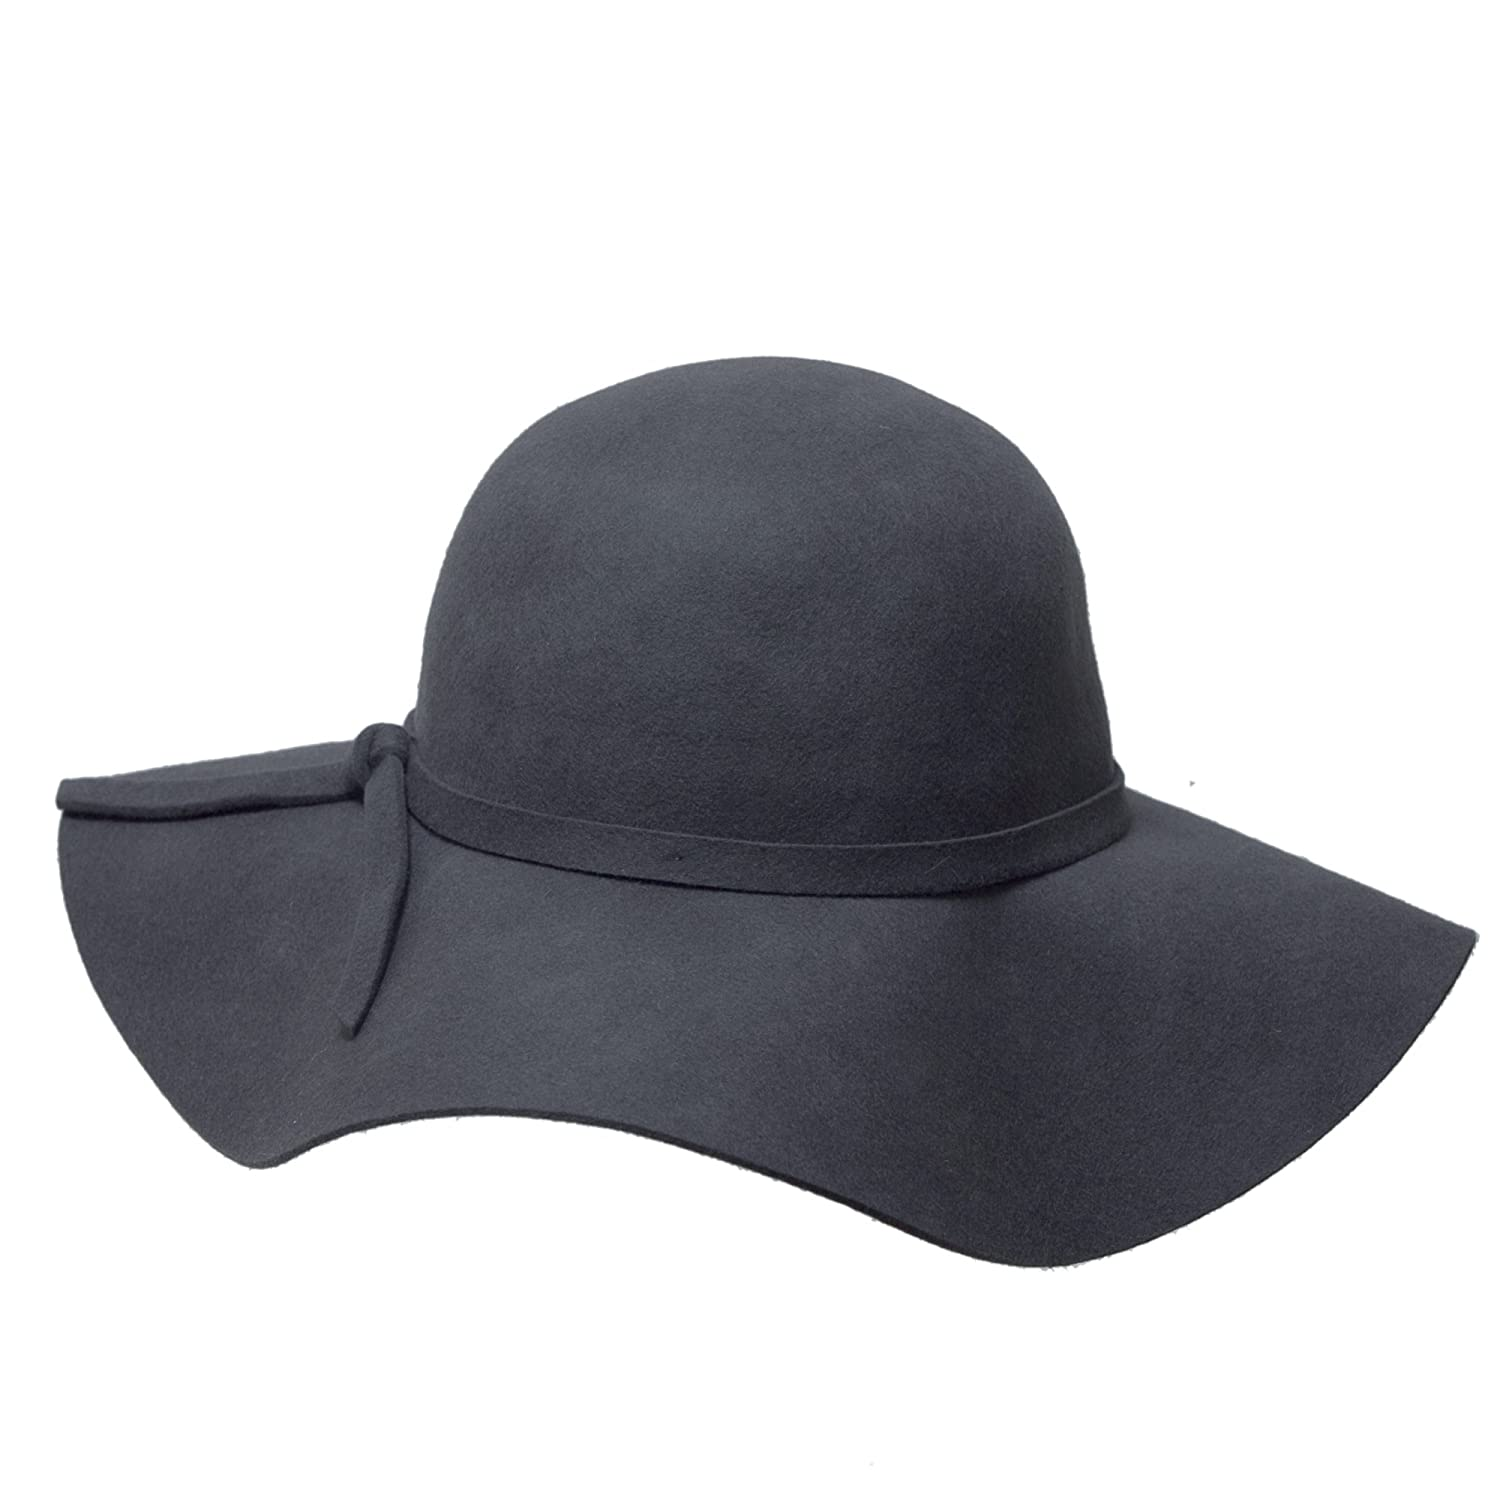 Women s Vintage Inspired Gray Wool Floppy Winter Hat at Amazon Women s  Clothing store  90a09e110cc2